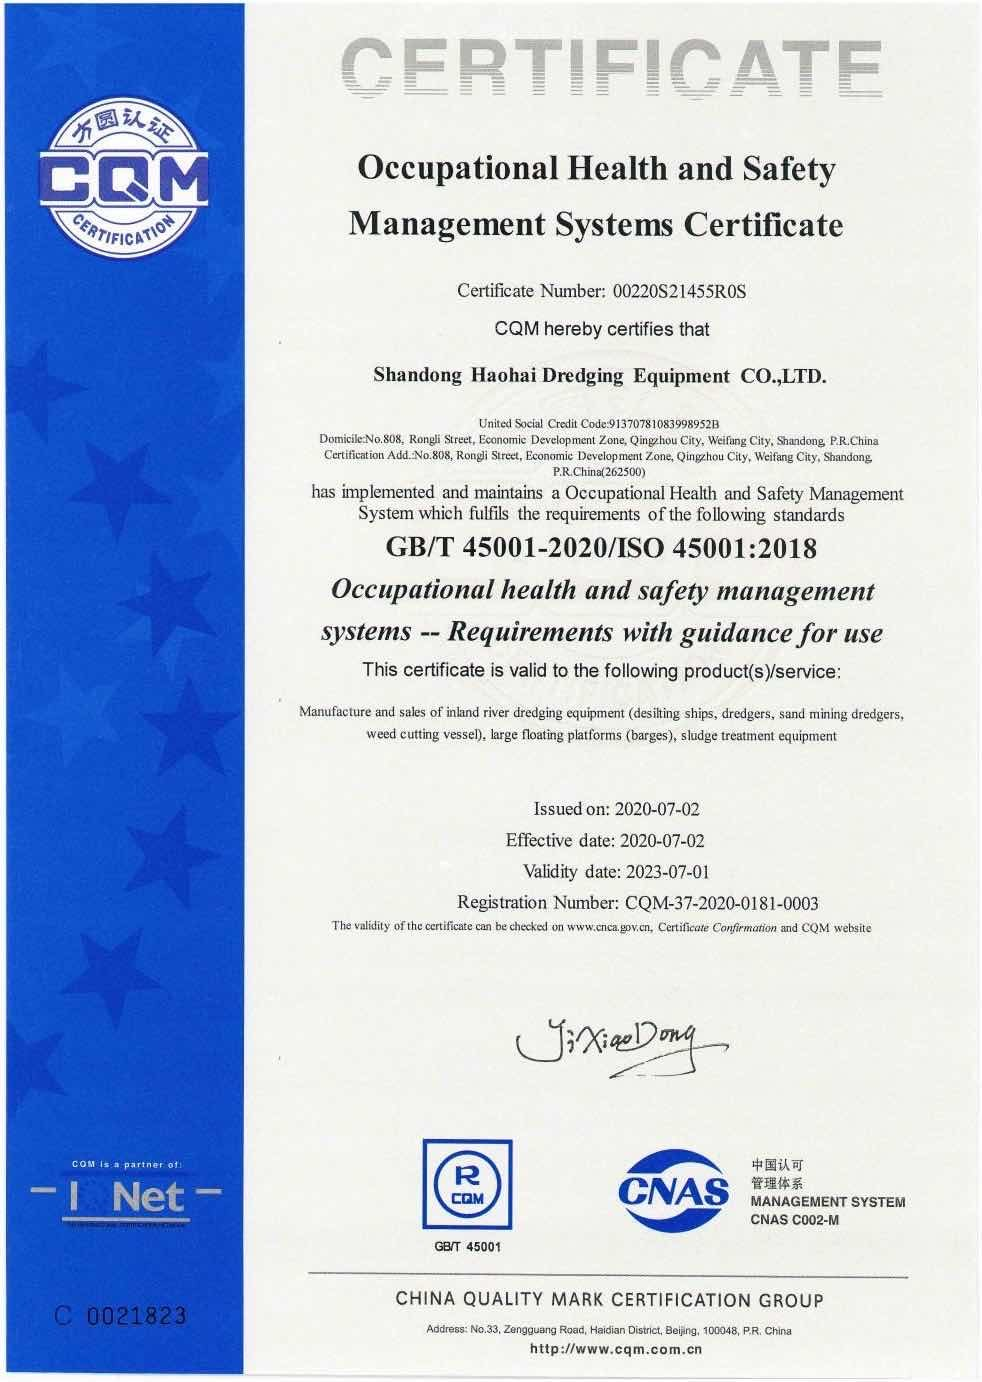 Occupational Health and Safety Management Systems Certificate